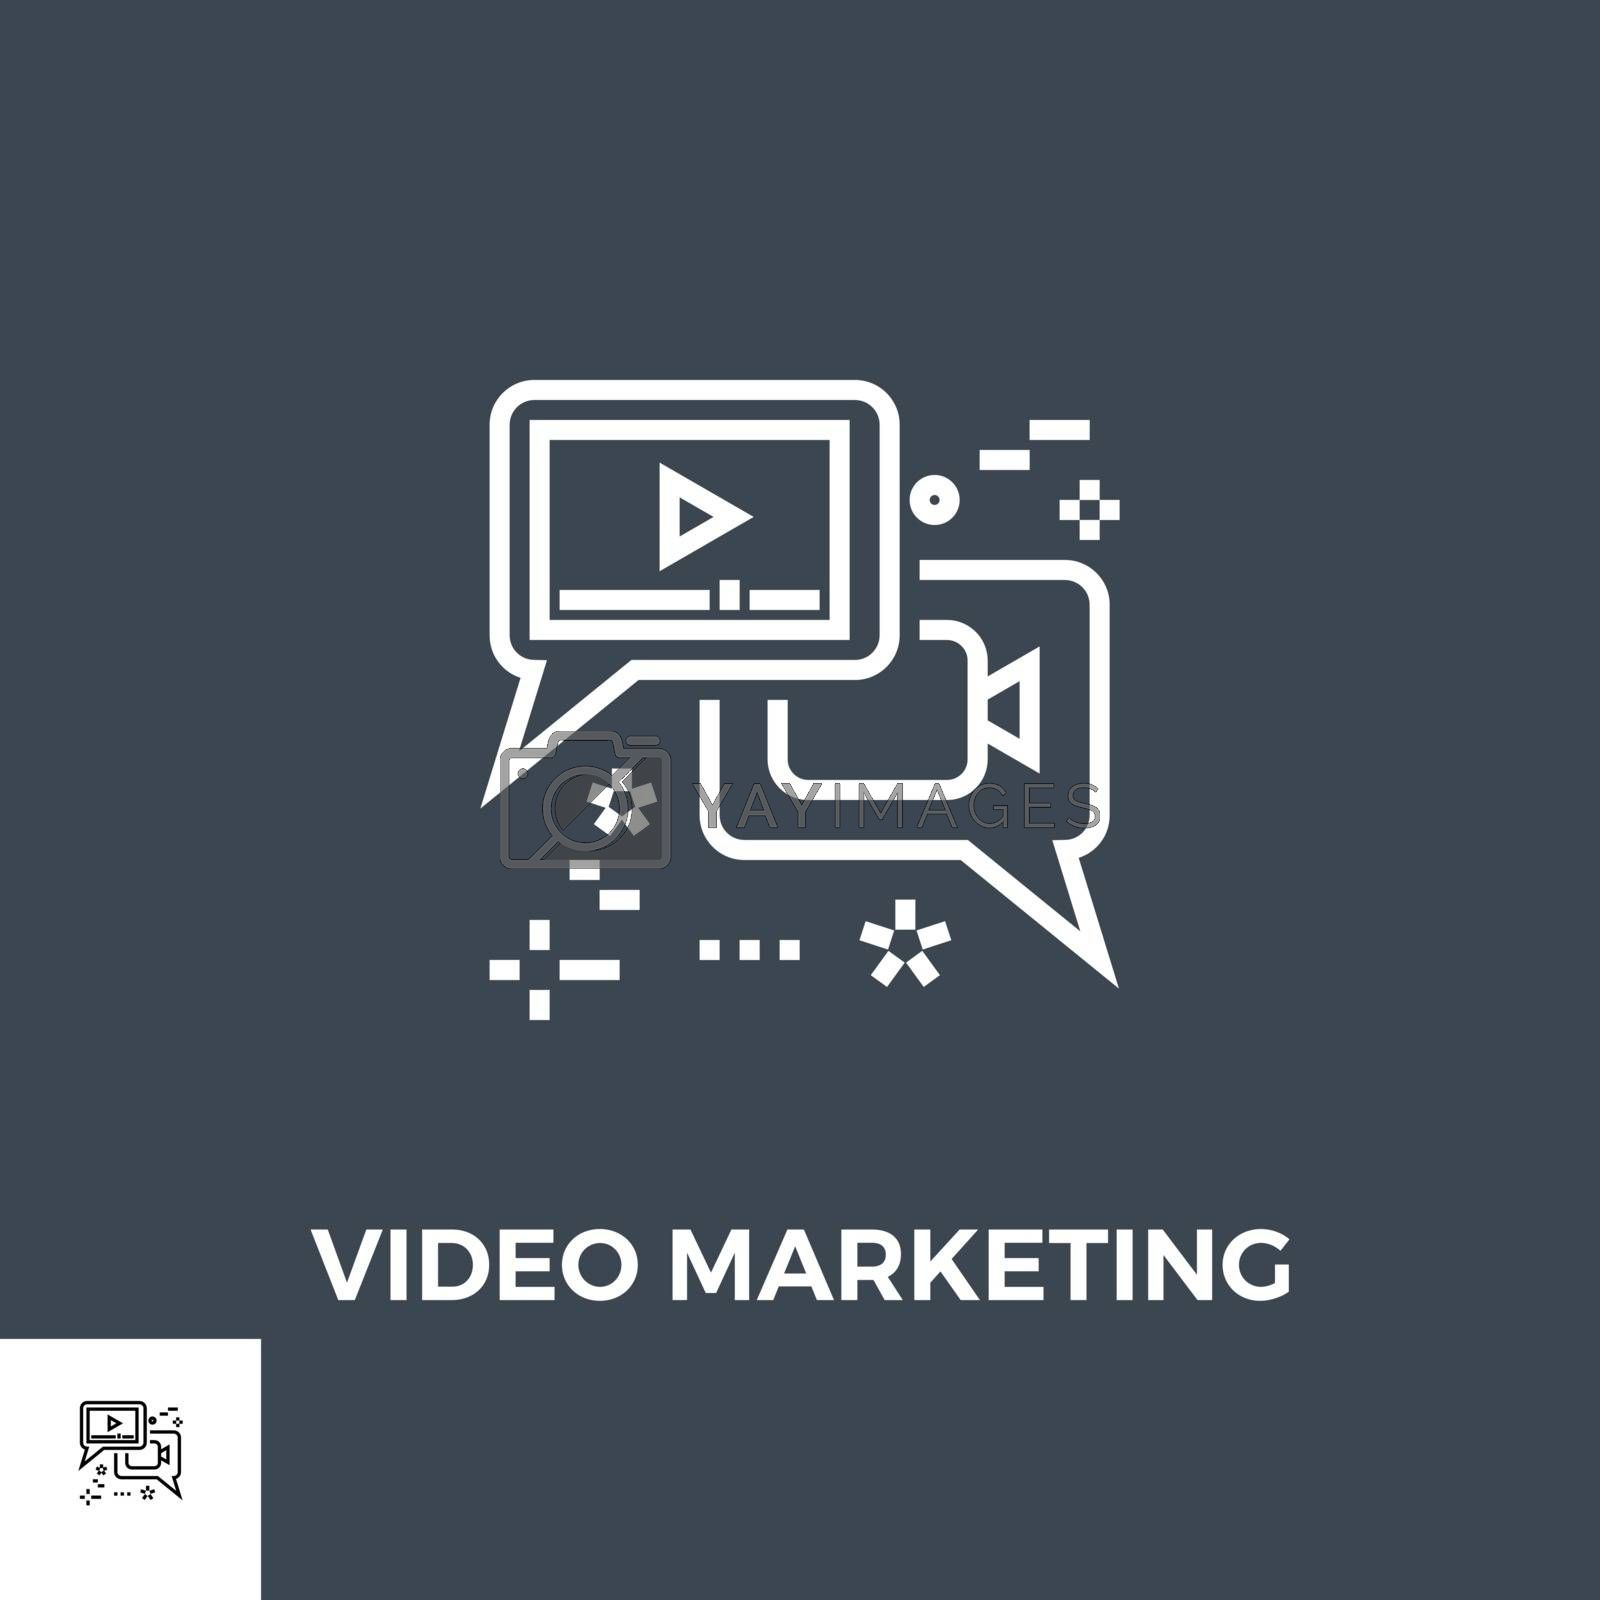 Video Marketing Related Vector Thin Line Icon. Isolated on Black Background. Vector Illustration.